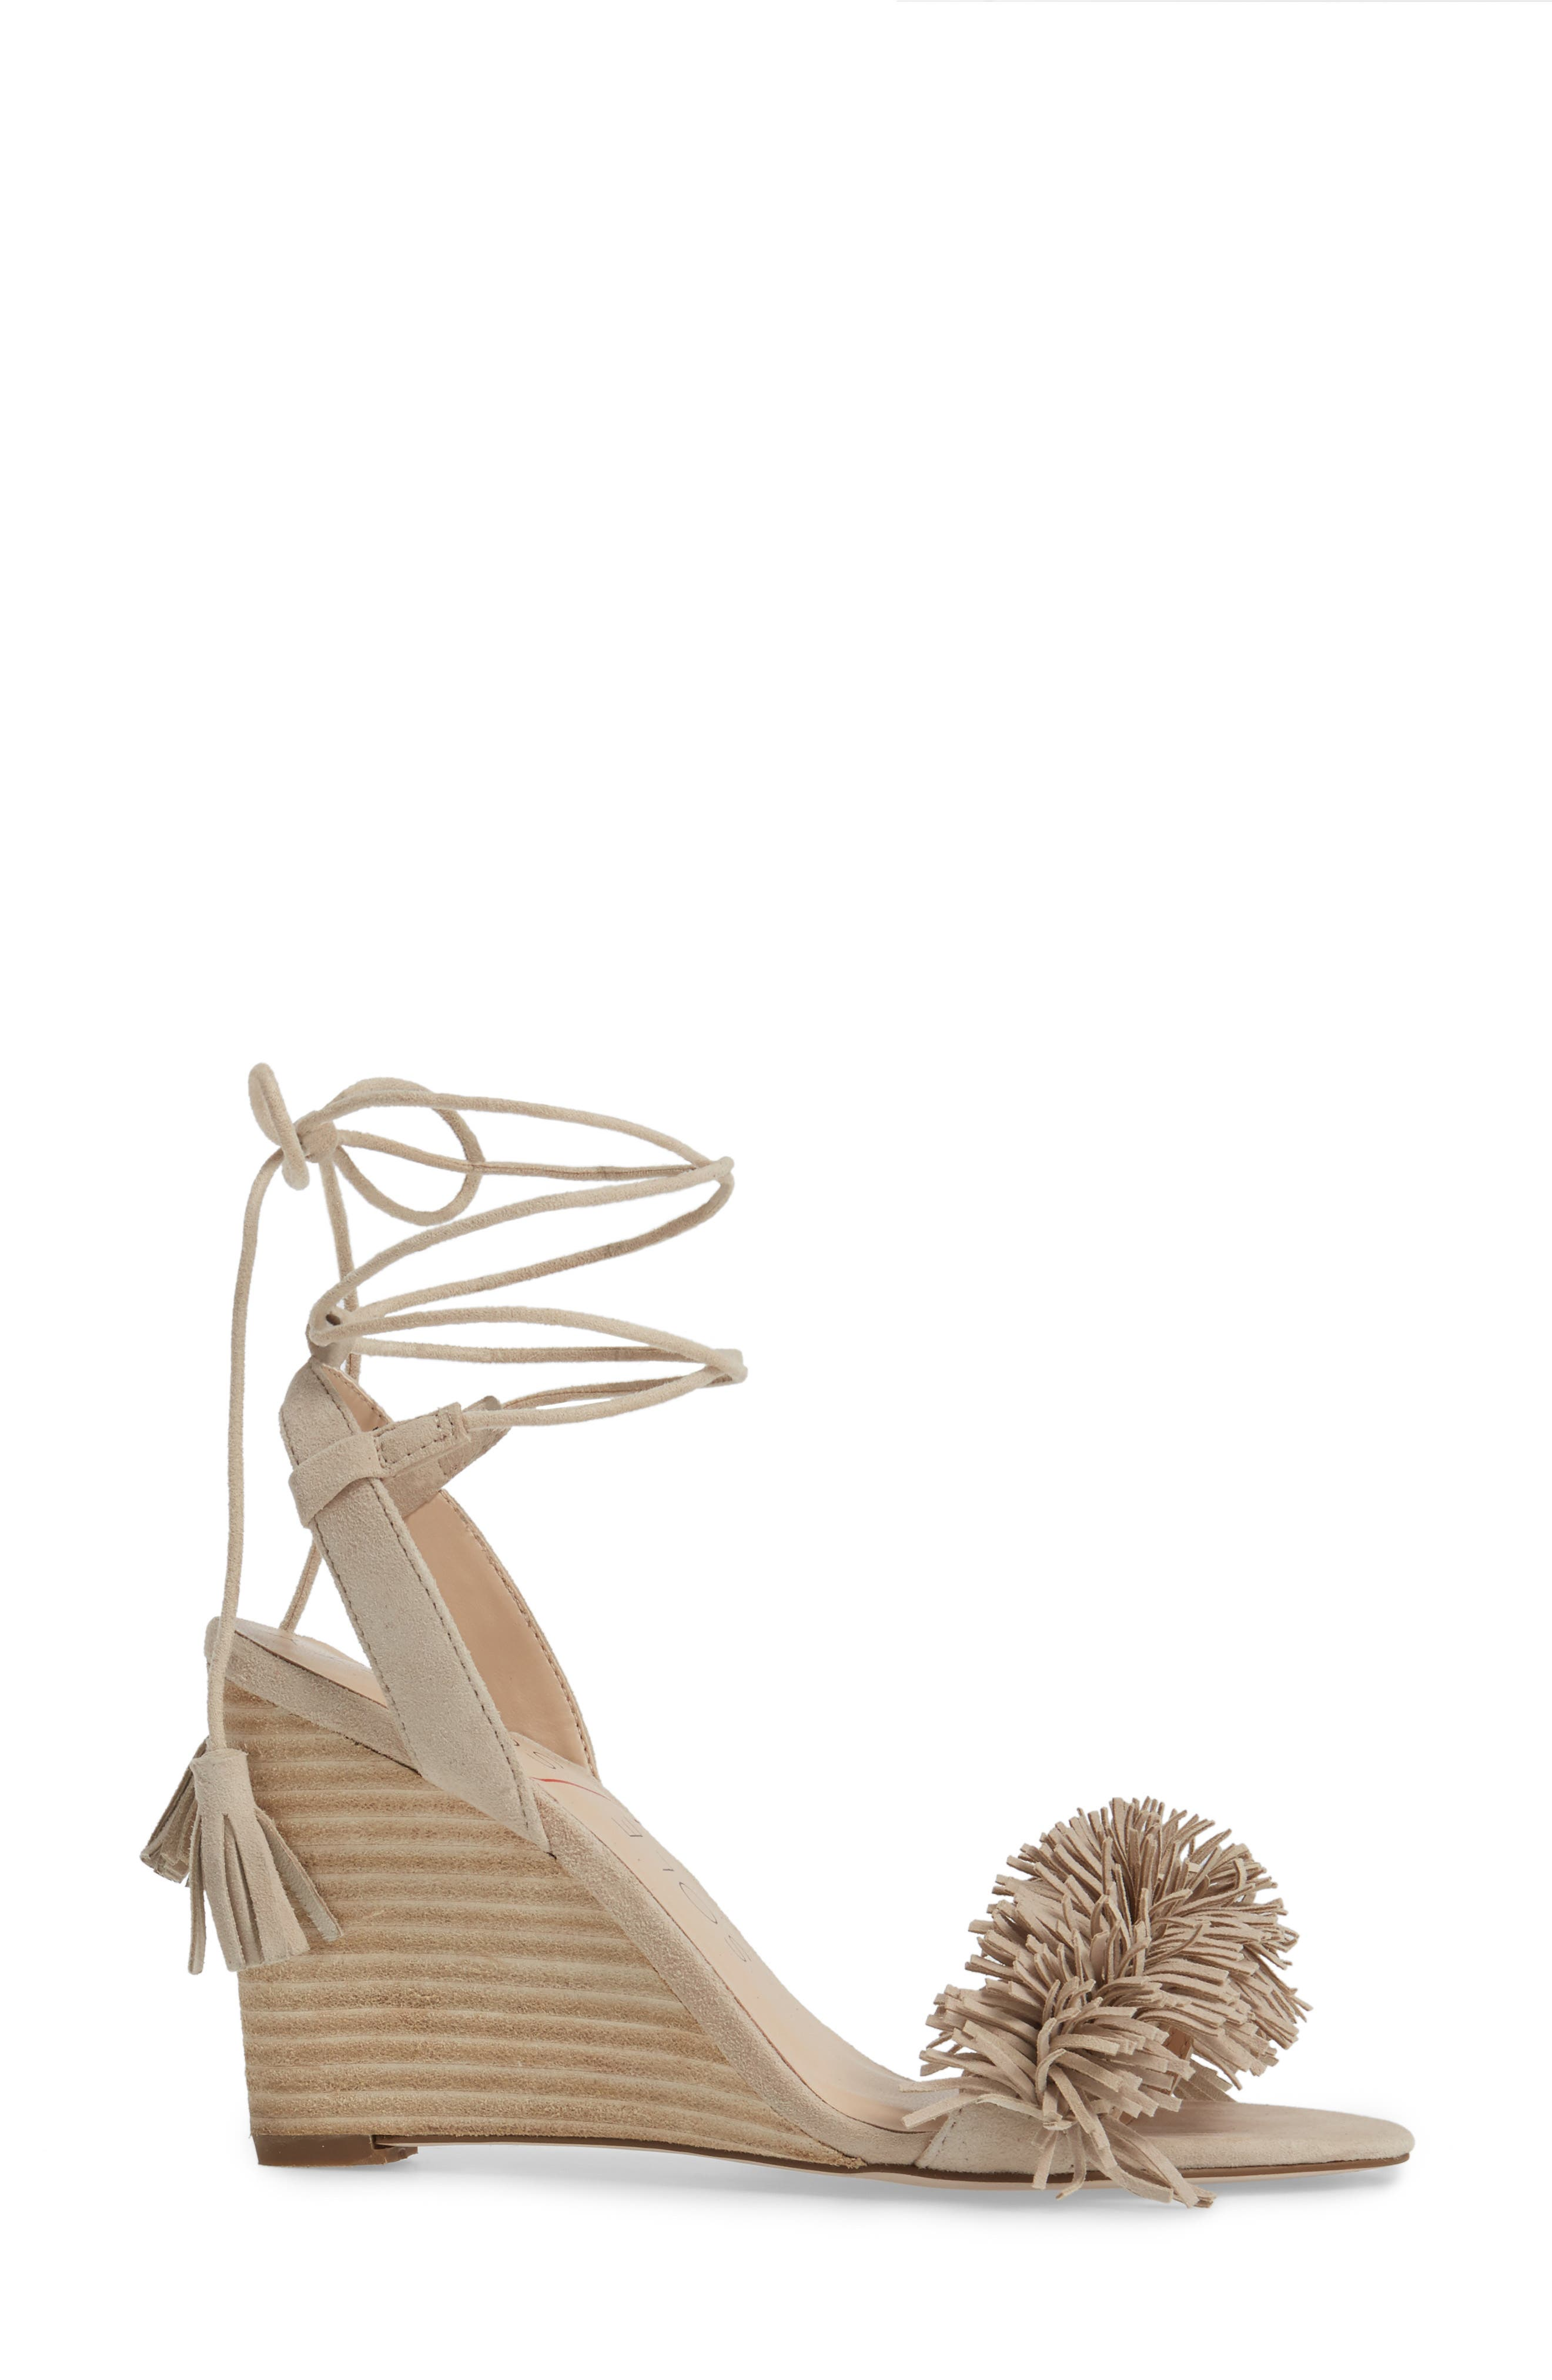 Rosea Ankle Wrap Sandal,                             Alternate thumbnail 3, color,                             French Taupe Suede